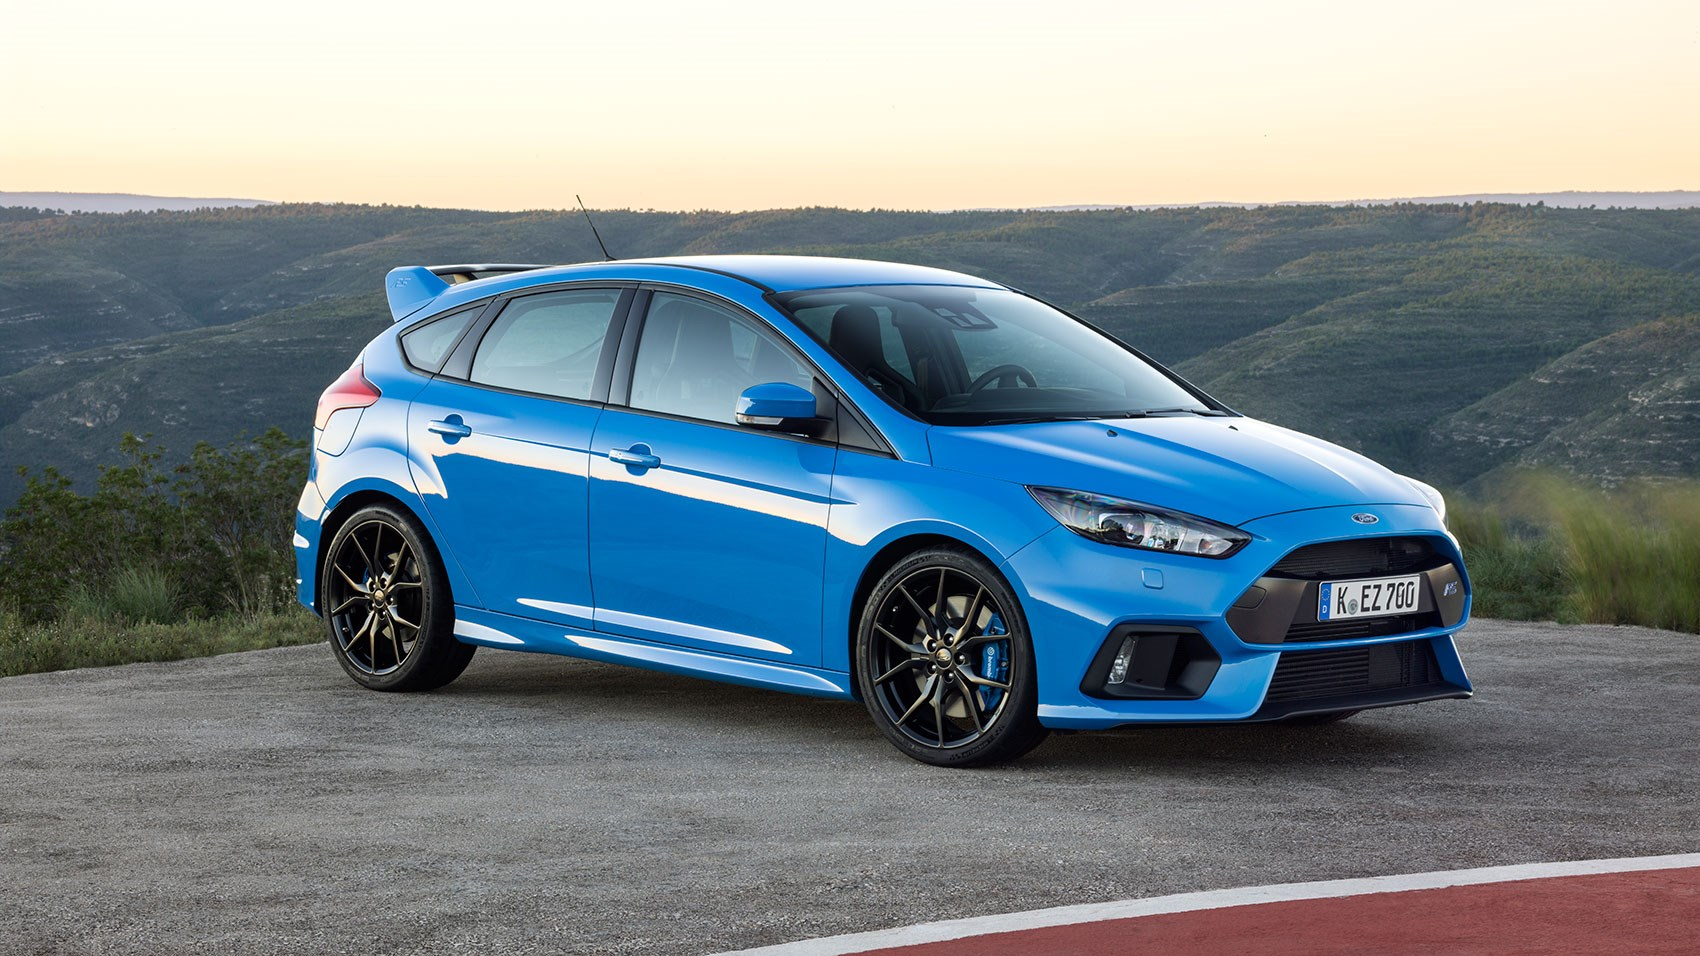 http://images.car.bauercdn.com/pagefiles/25191/ford-rs_15.jpg